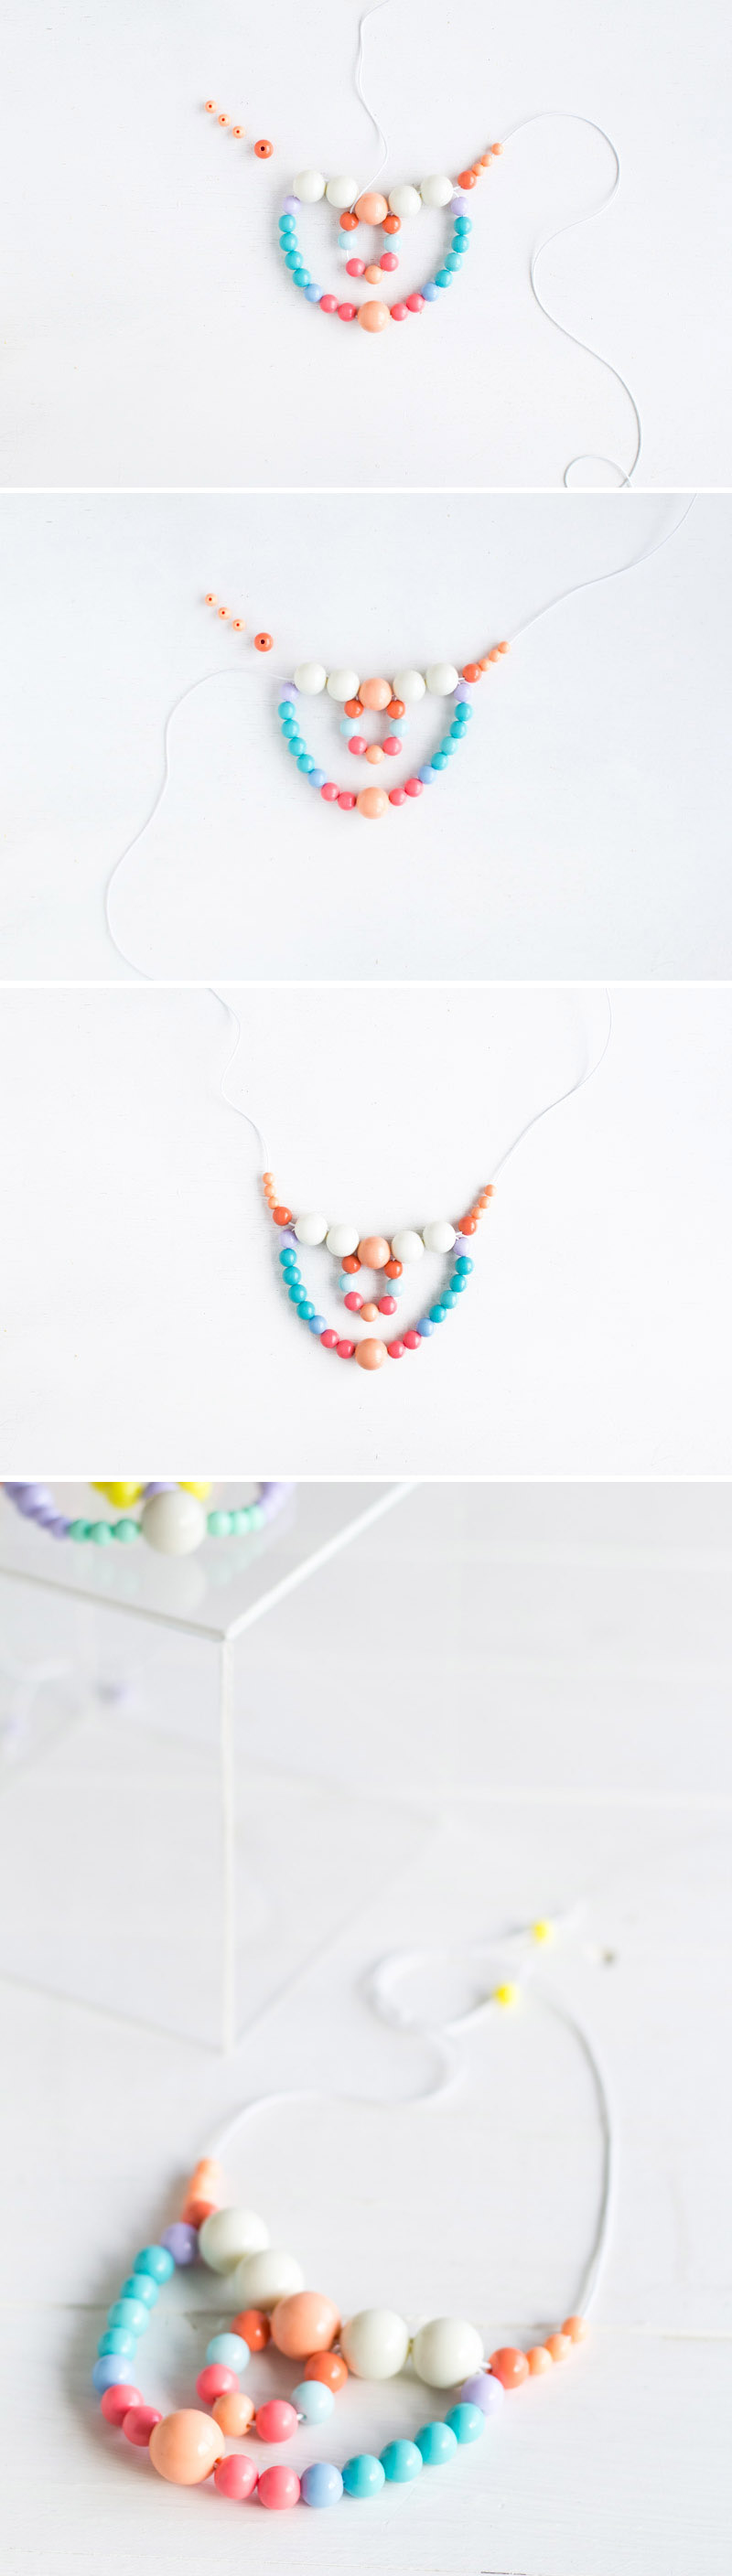 Beaded Necklace tutorial | Fall For DIY steps